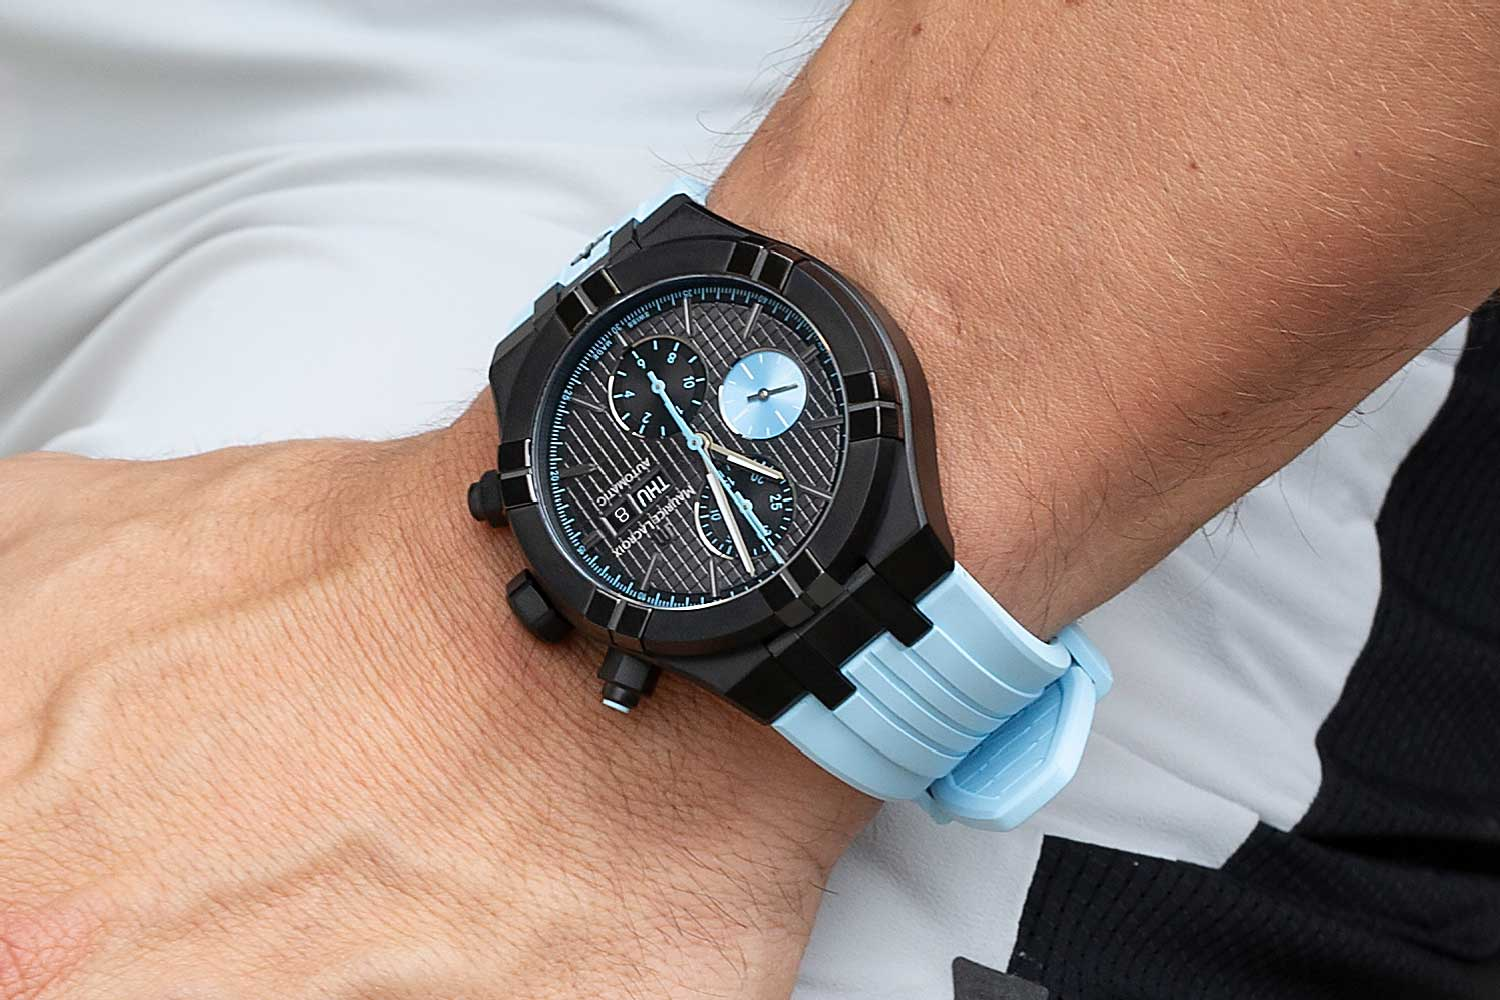 The watch is equipped with calibre ML112, based on the Sellita SW500 that delivers a 48-hour power reserve.